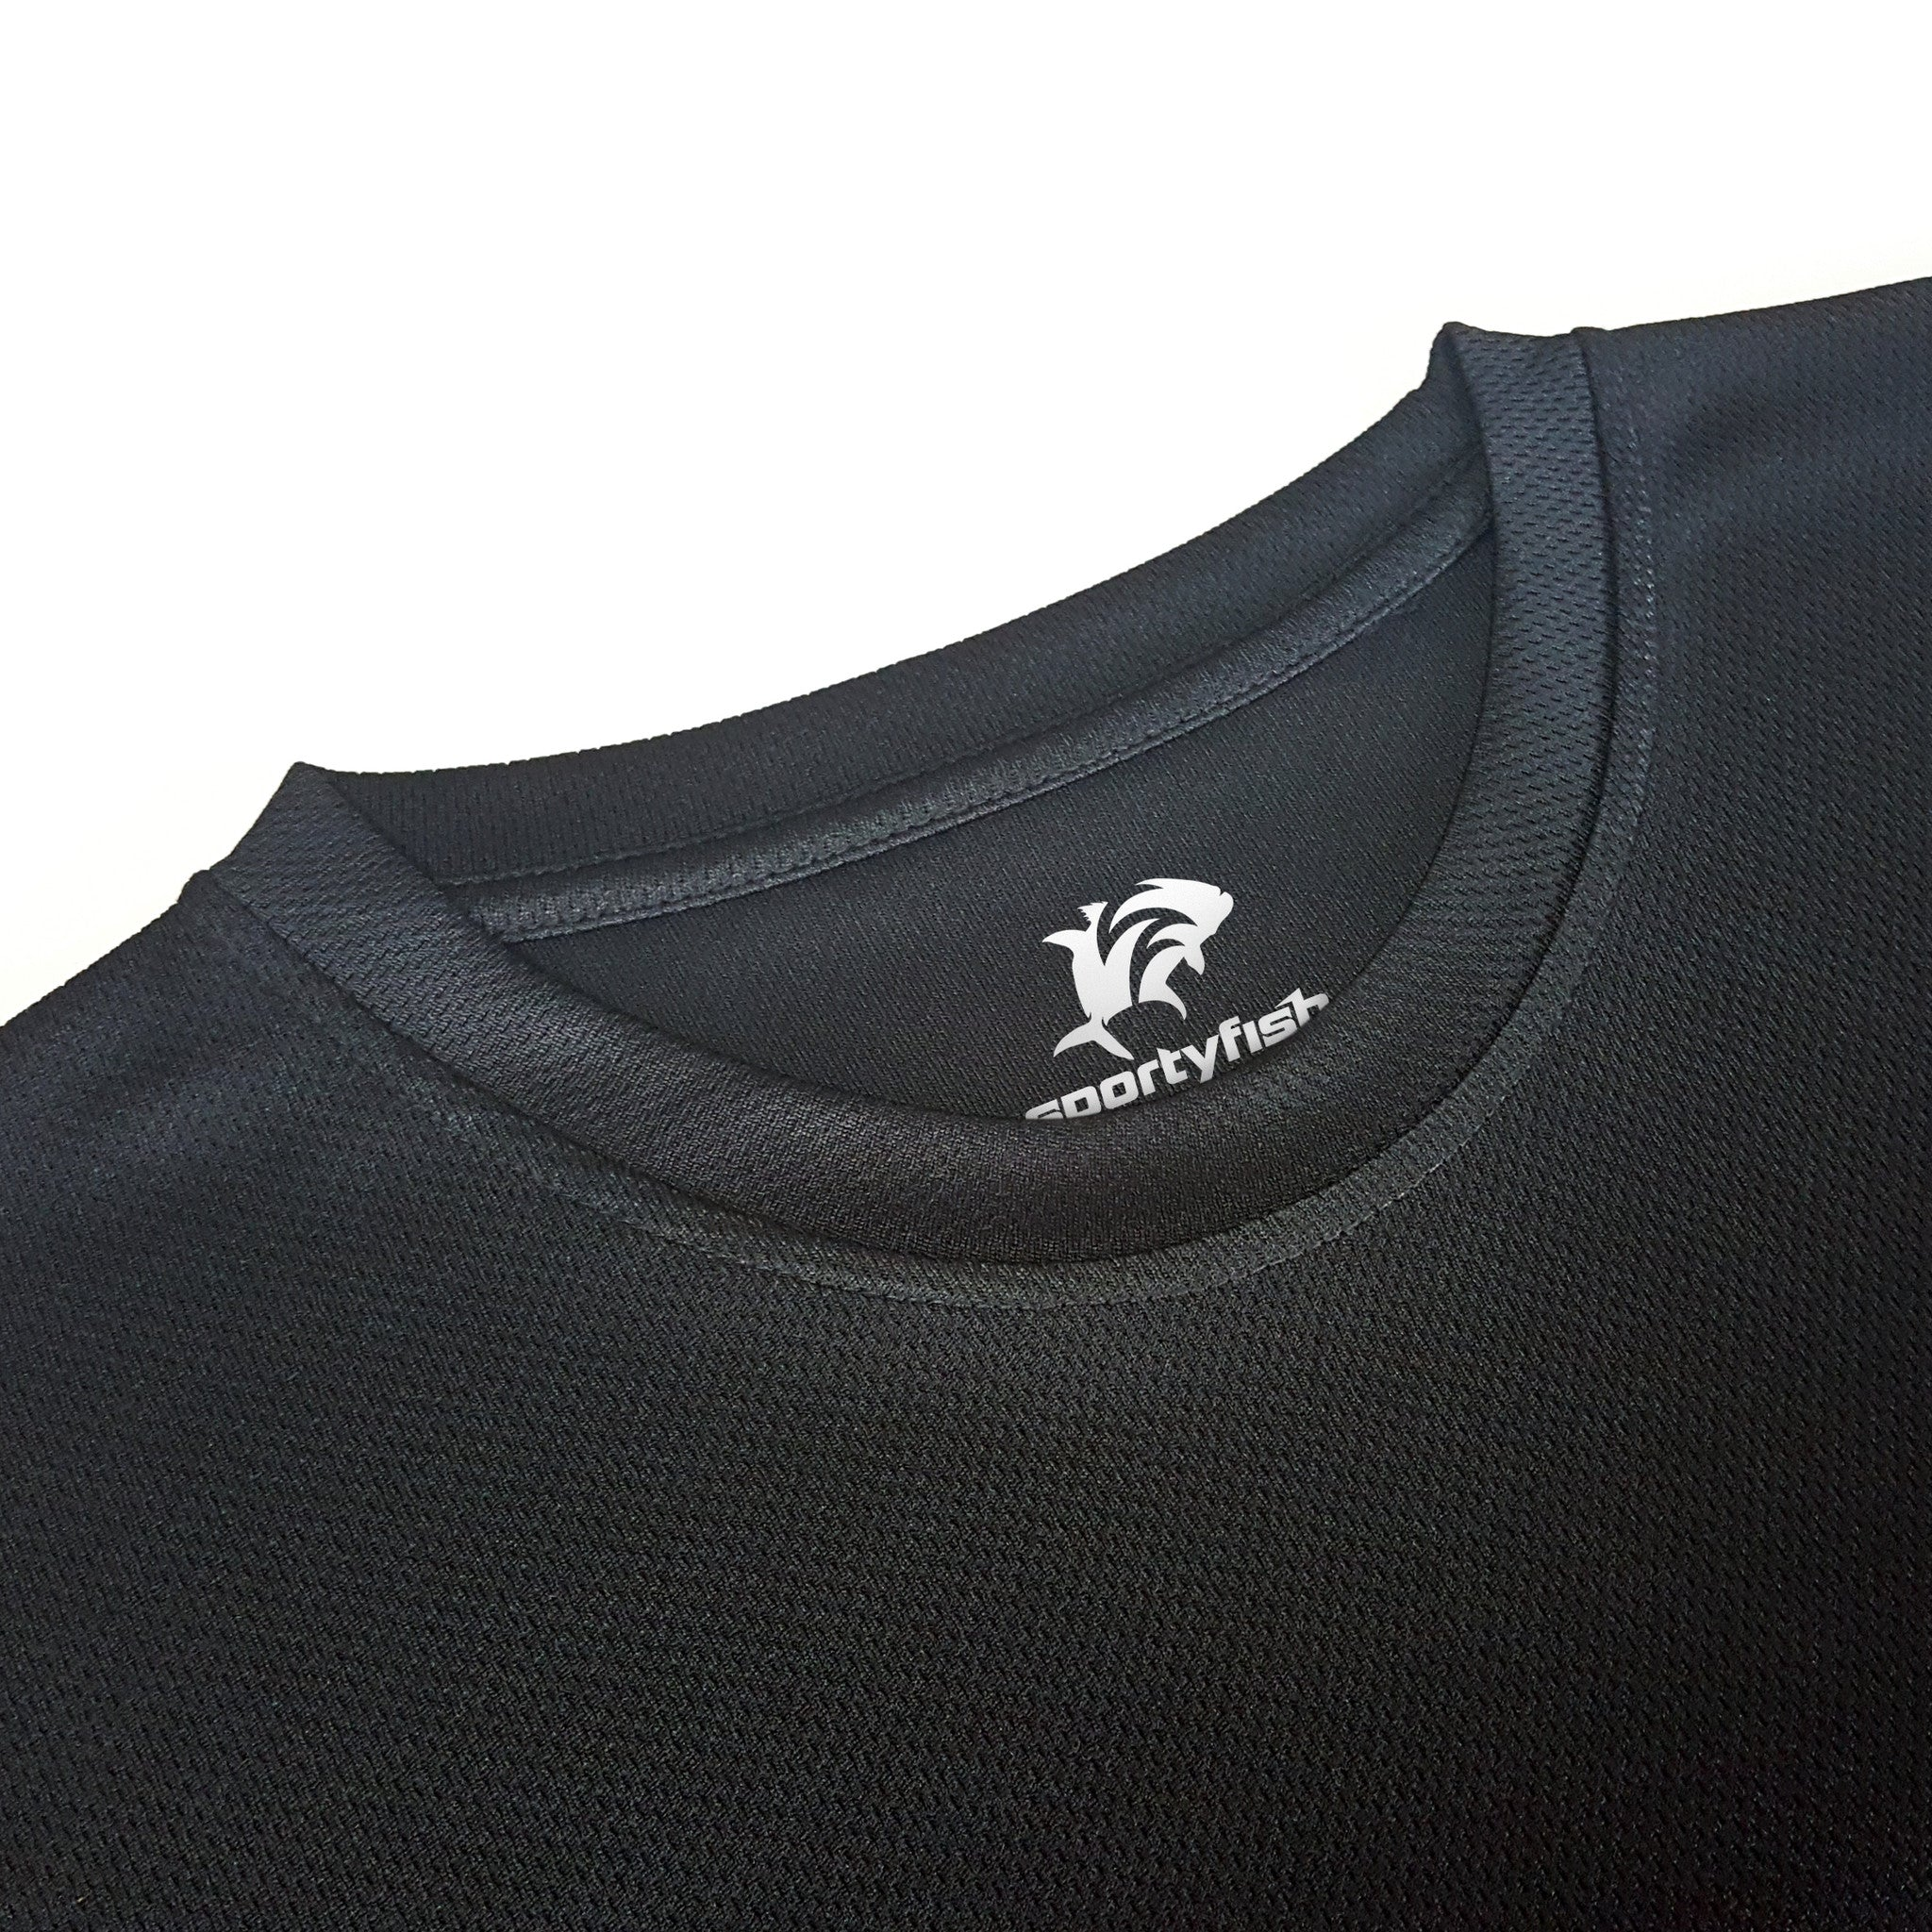 SportyFish Black Series black t-shirt: Grouper close-up view 3